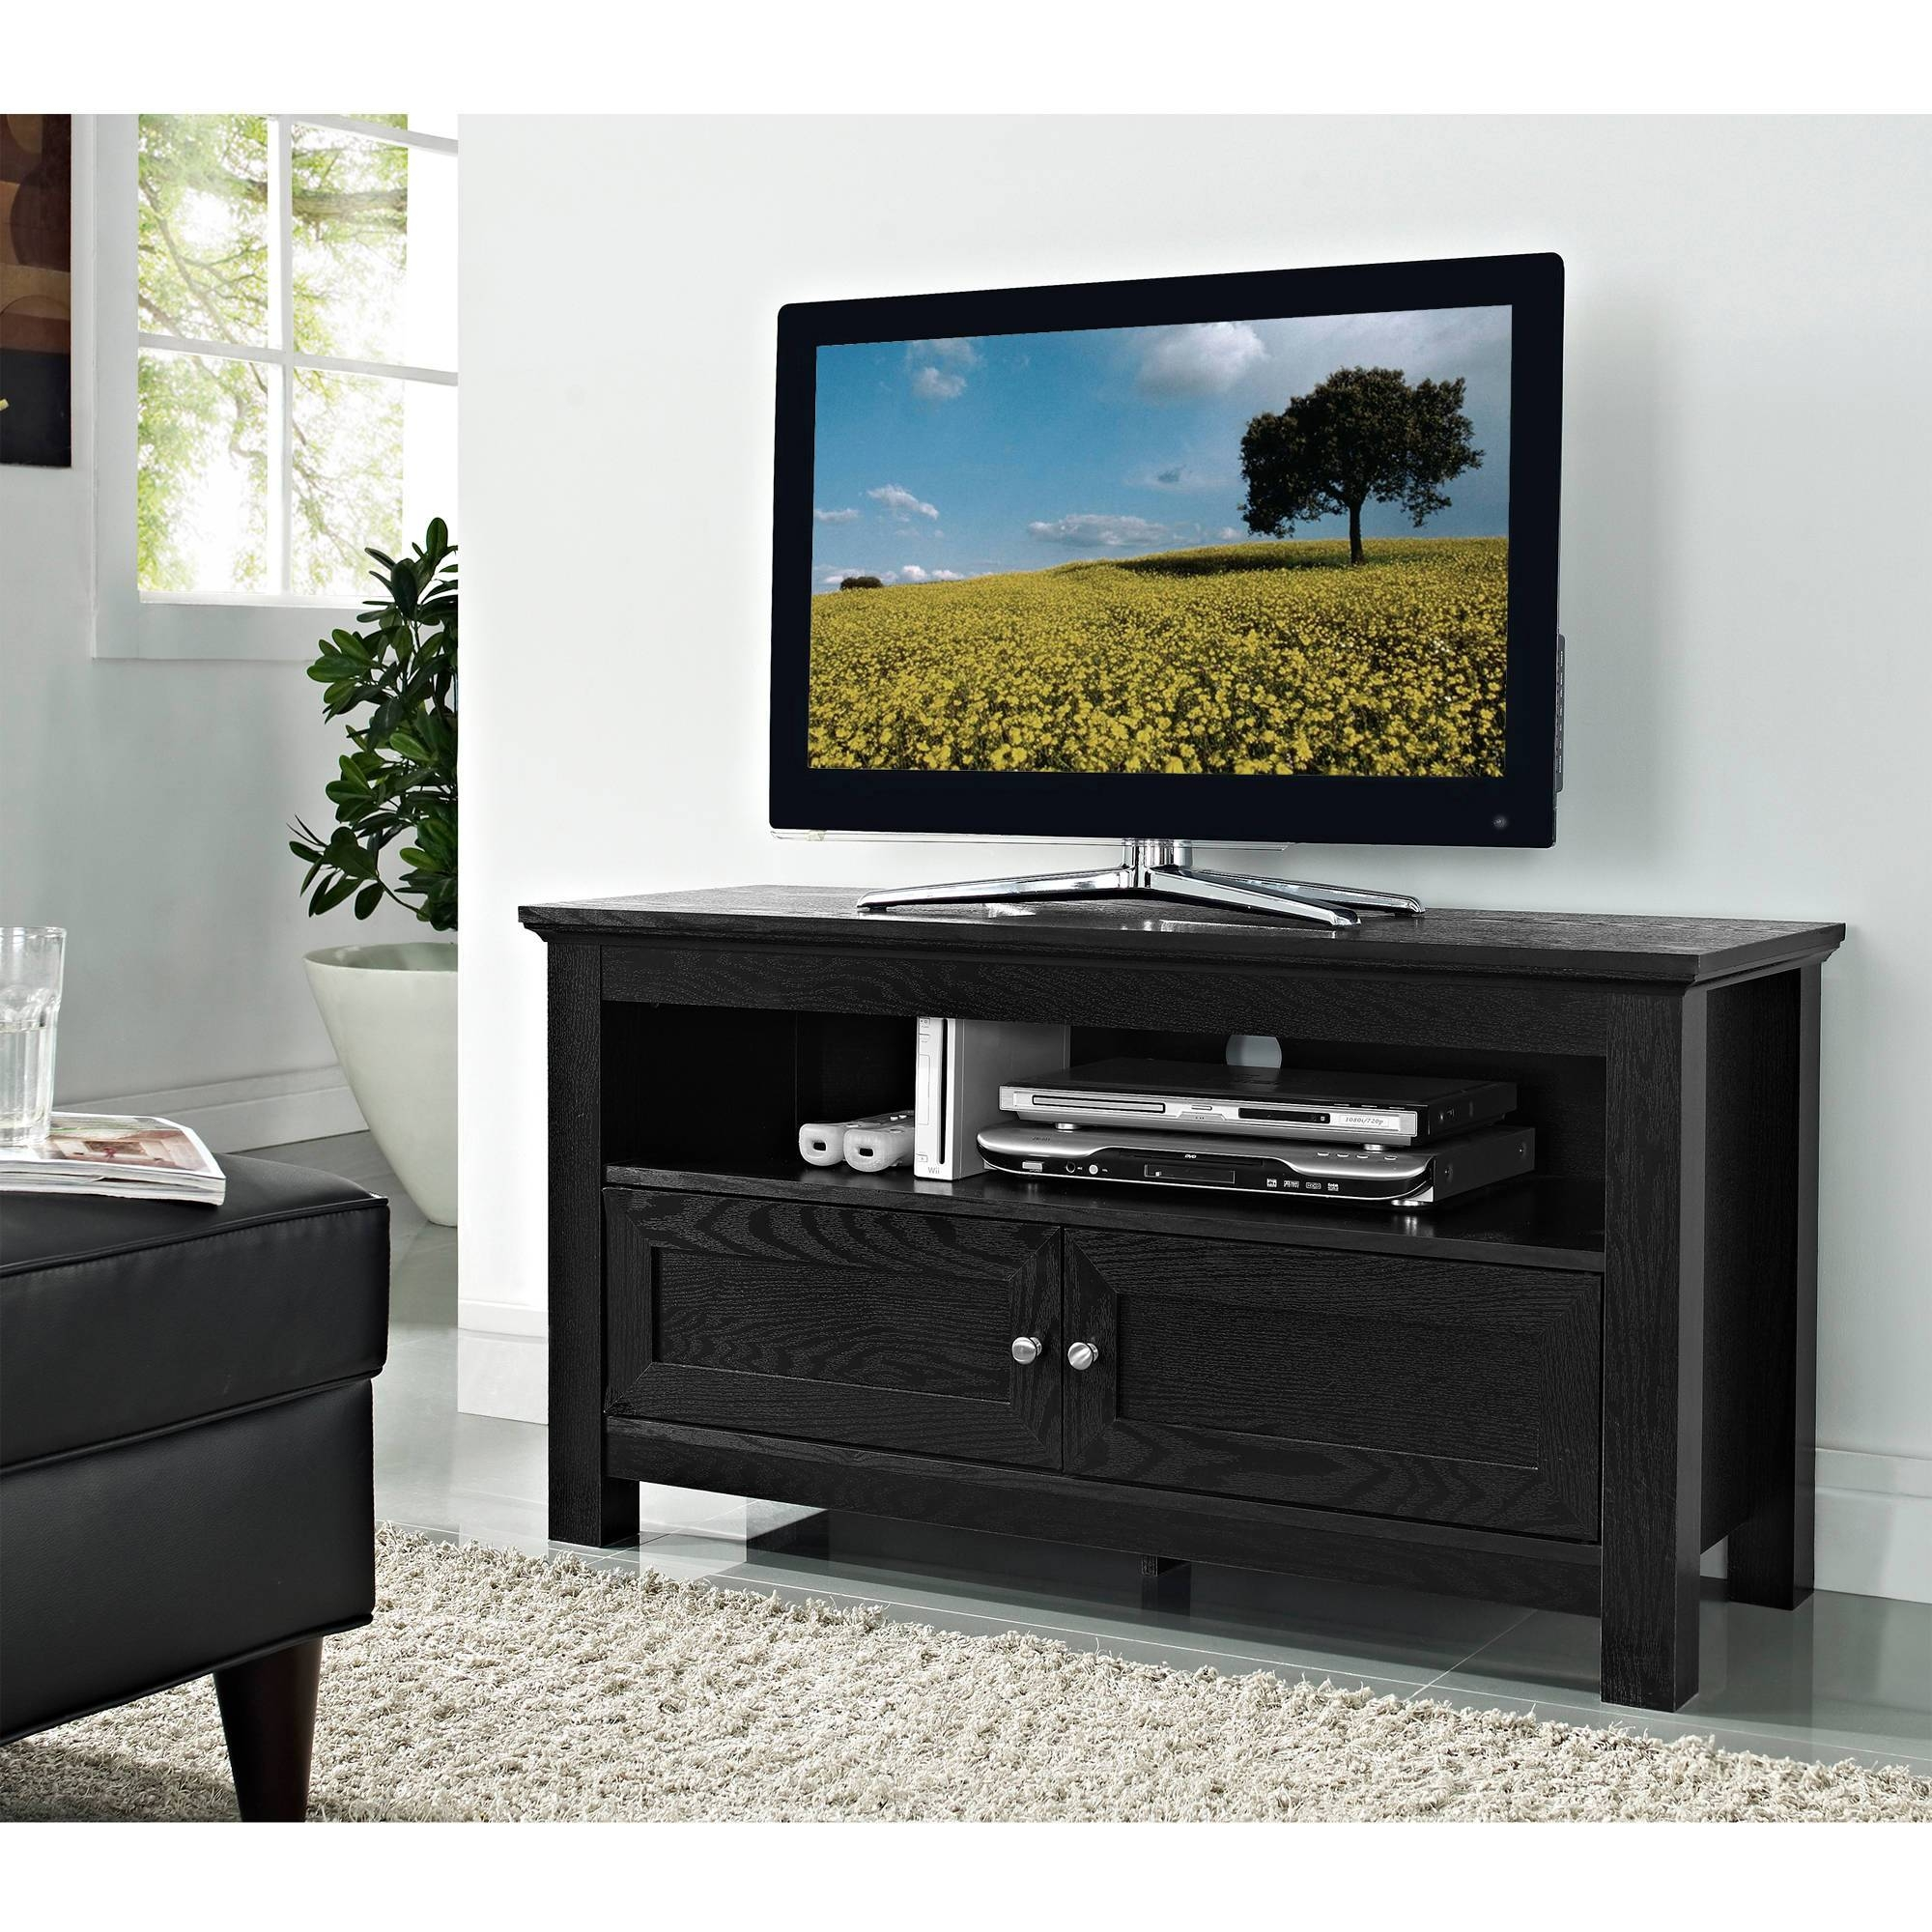 Wall Units: Amazing Walmart Entertainment Center Tv Stands Cheap Pertaining To Tv Stands With Drawers And Shelves (View 14 of 15)